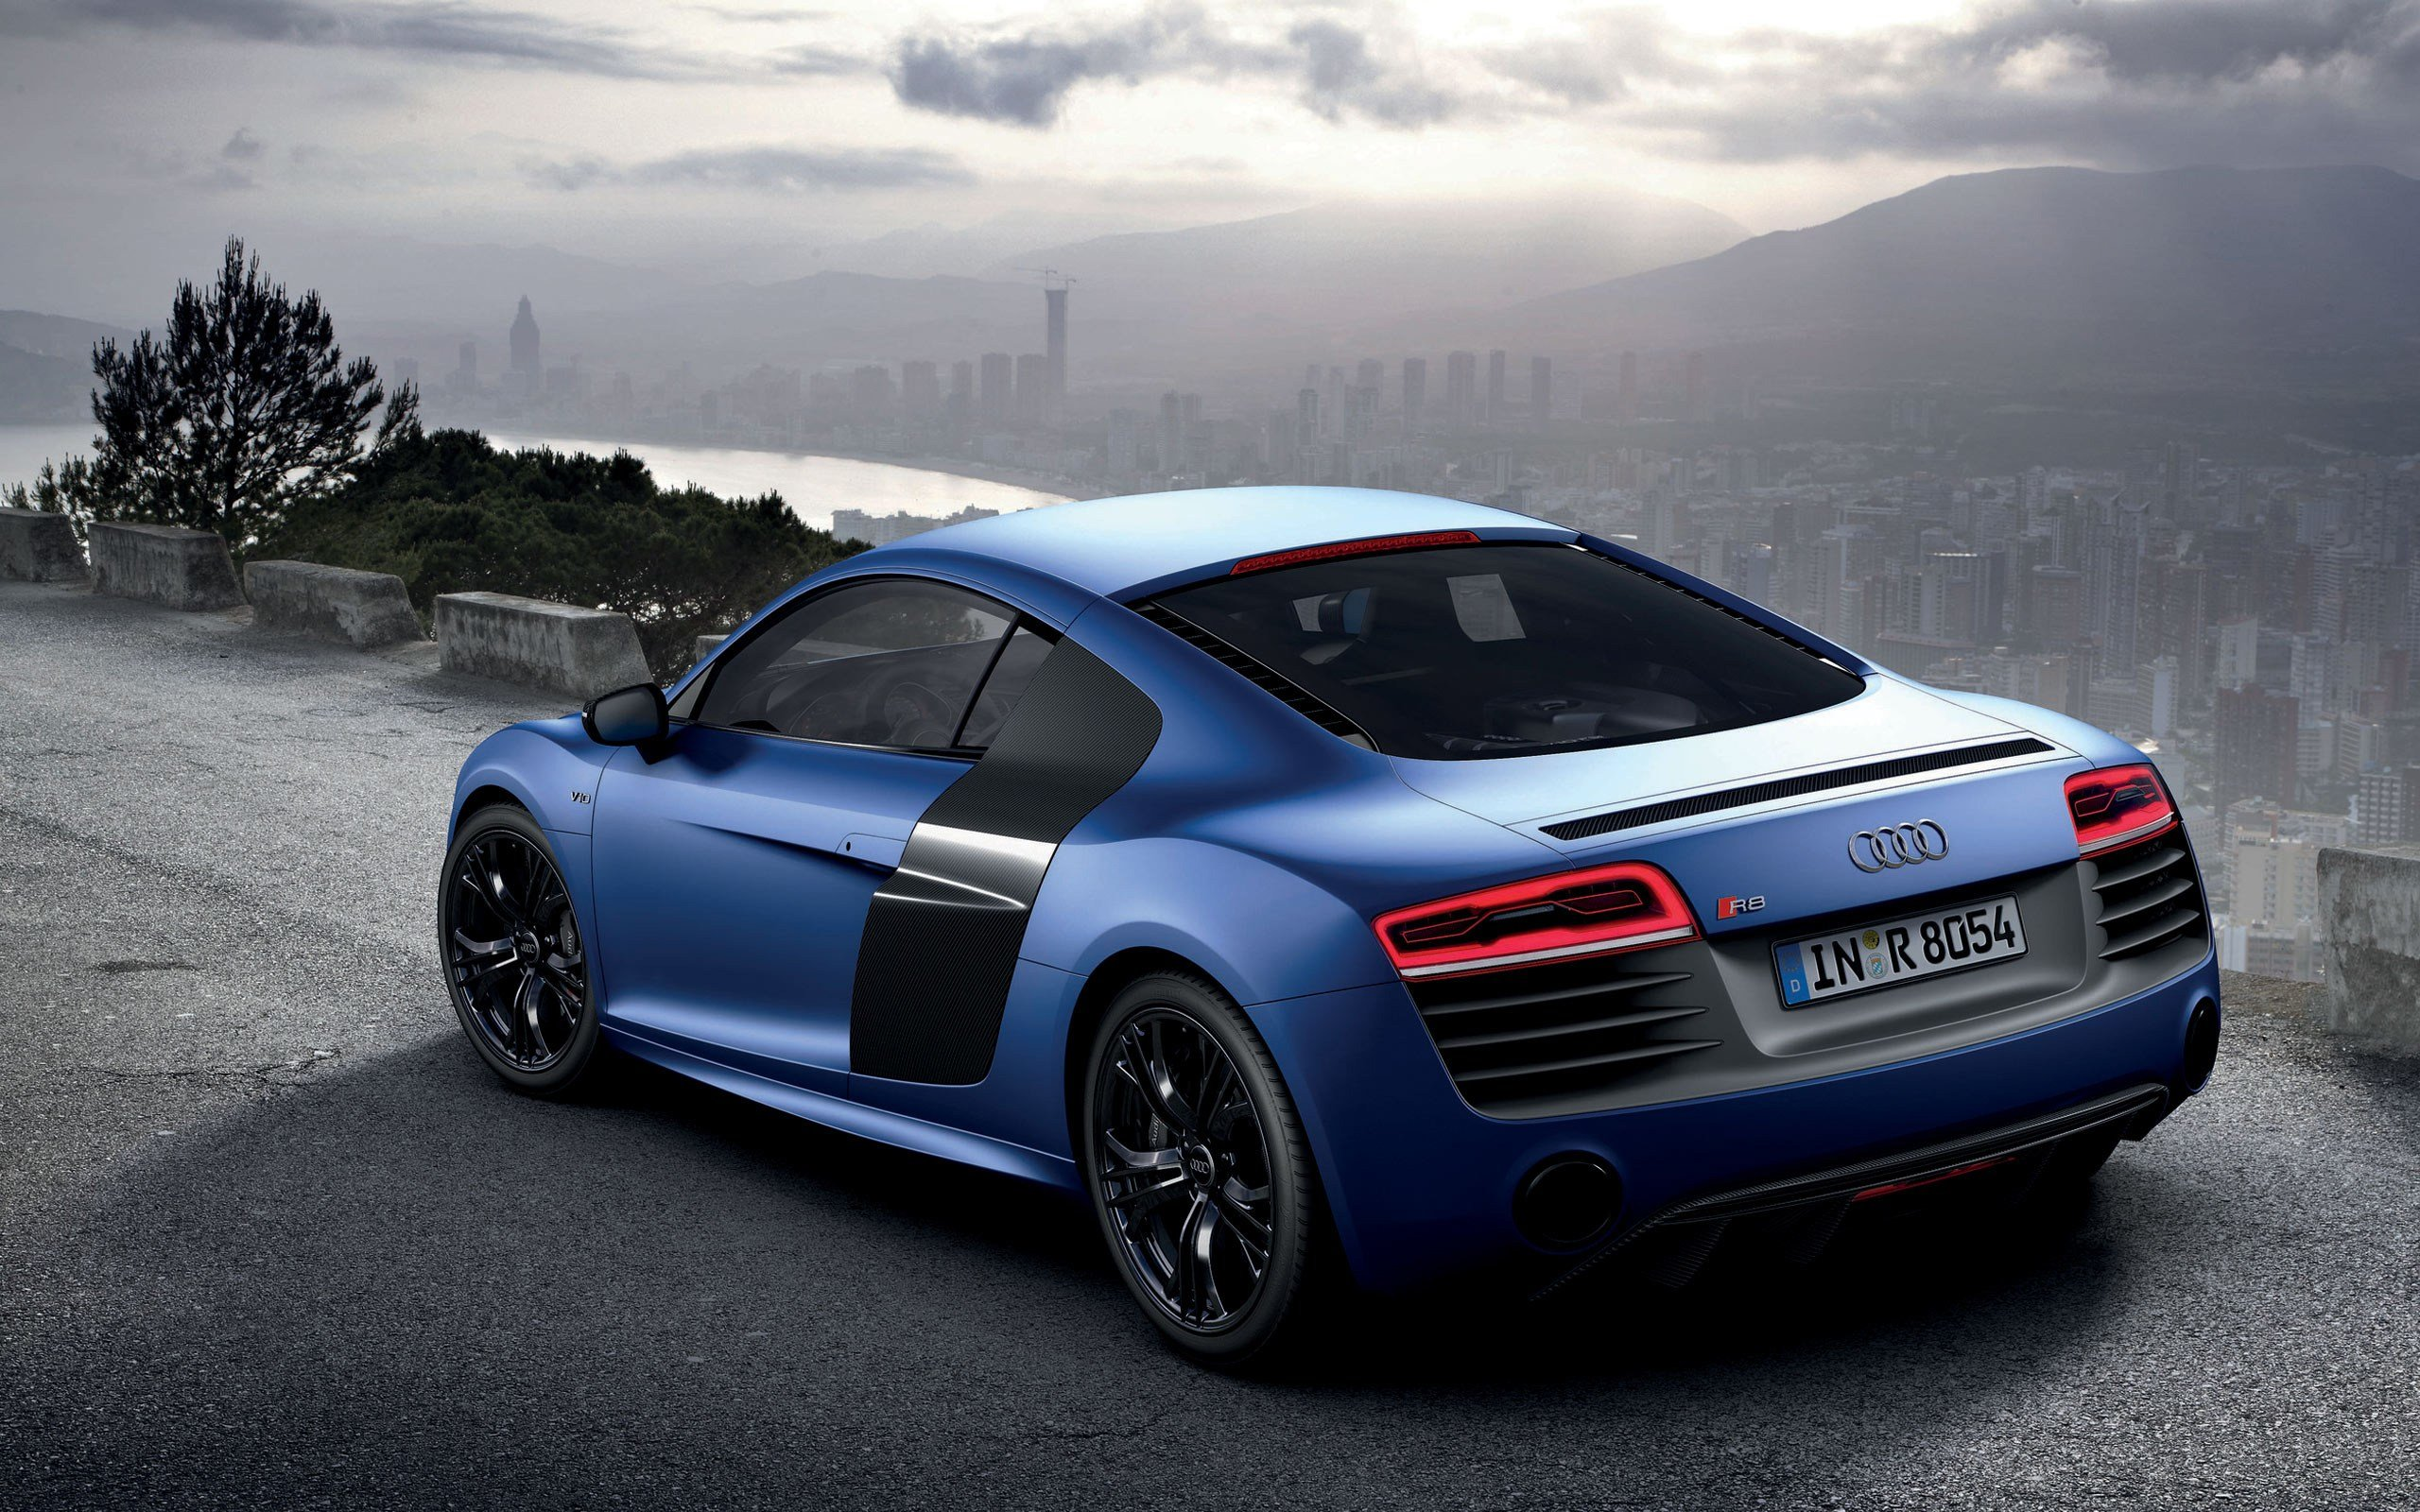 Latest 2013 Audi R8 V10 Plus 2 Wallpaper Hd Car Wallpapers Id Free Download